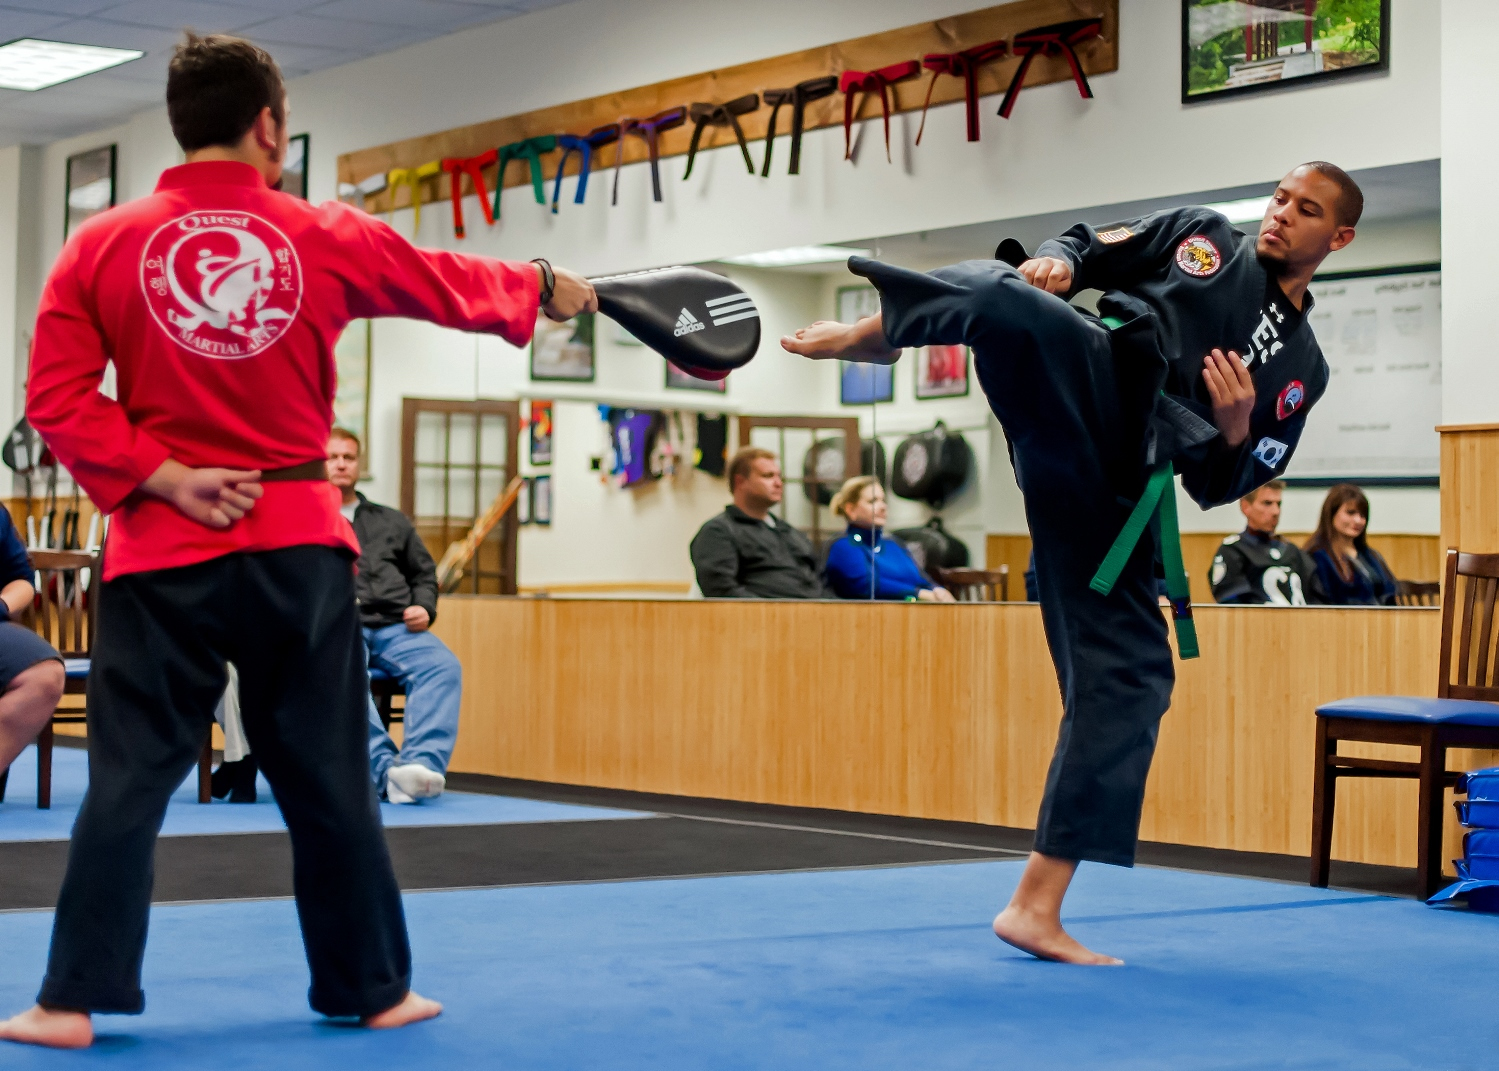 Martial Arts Benefits: Self-Defense, Fitness, Stress Relief